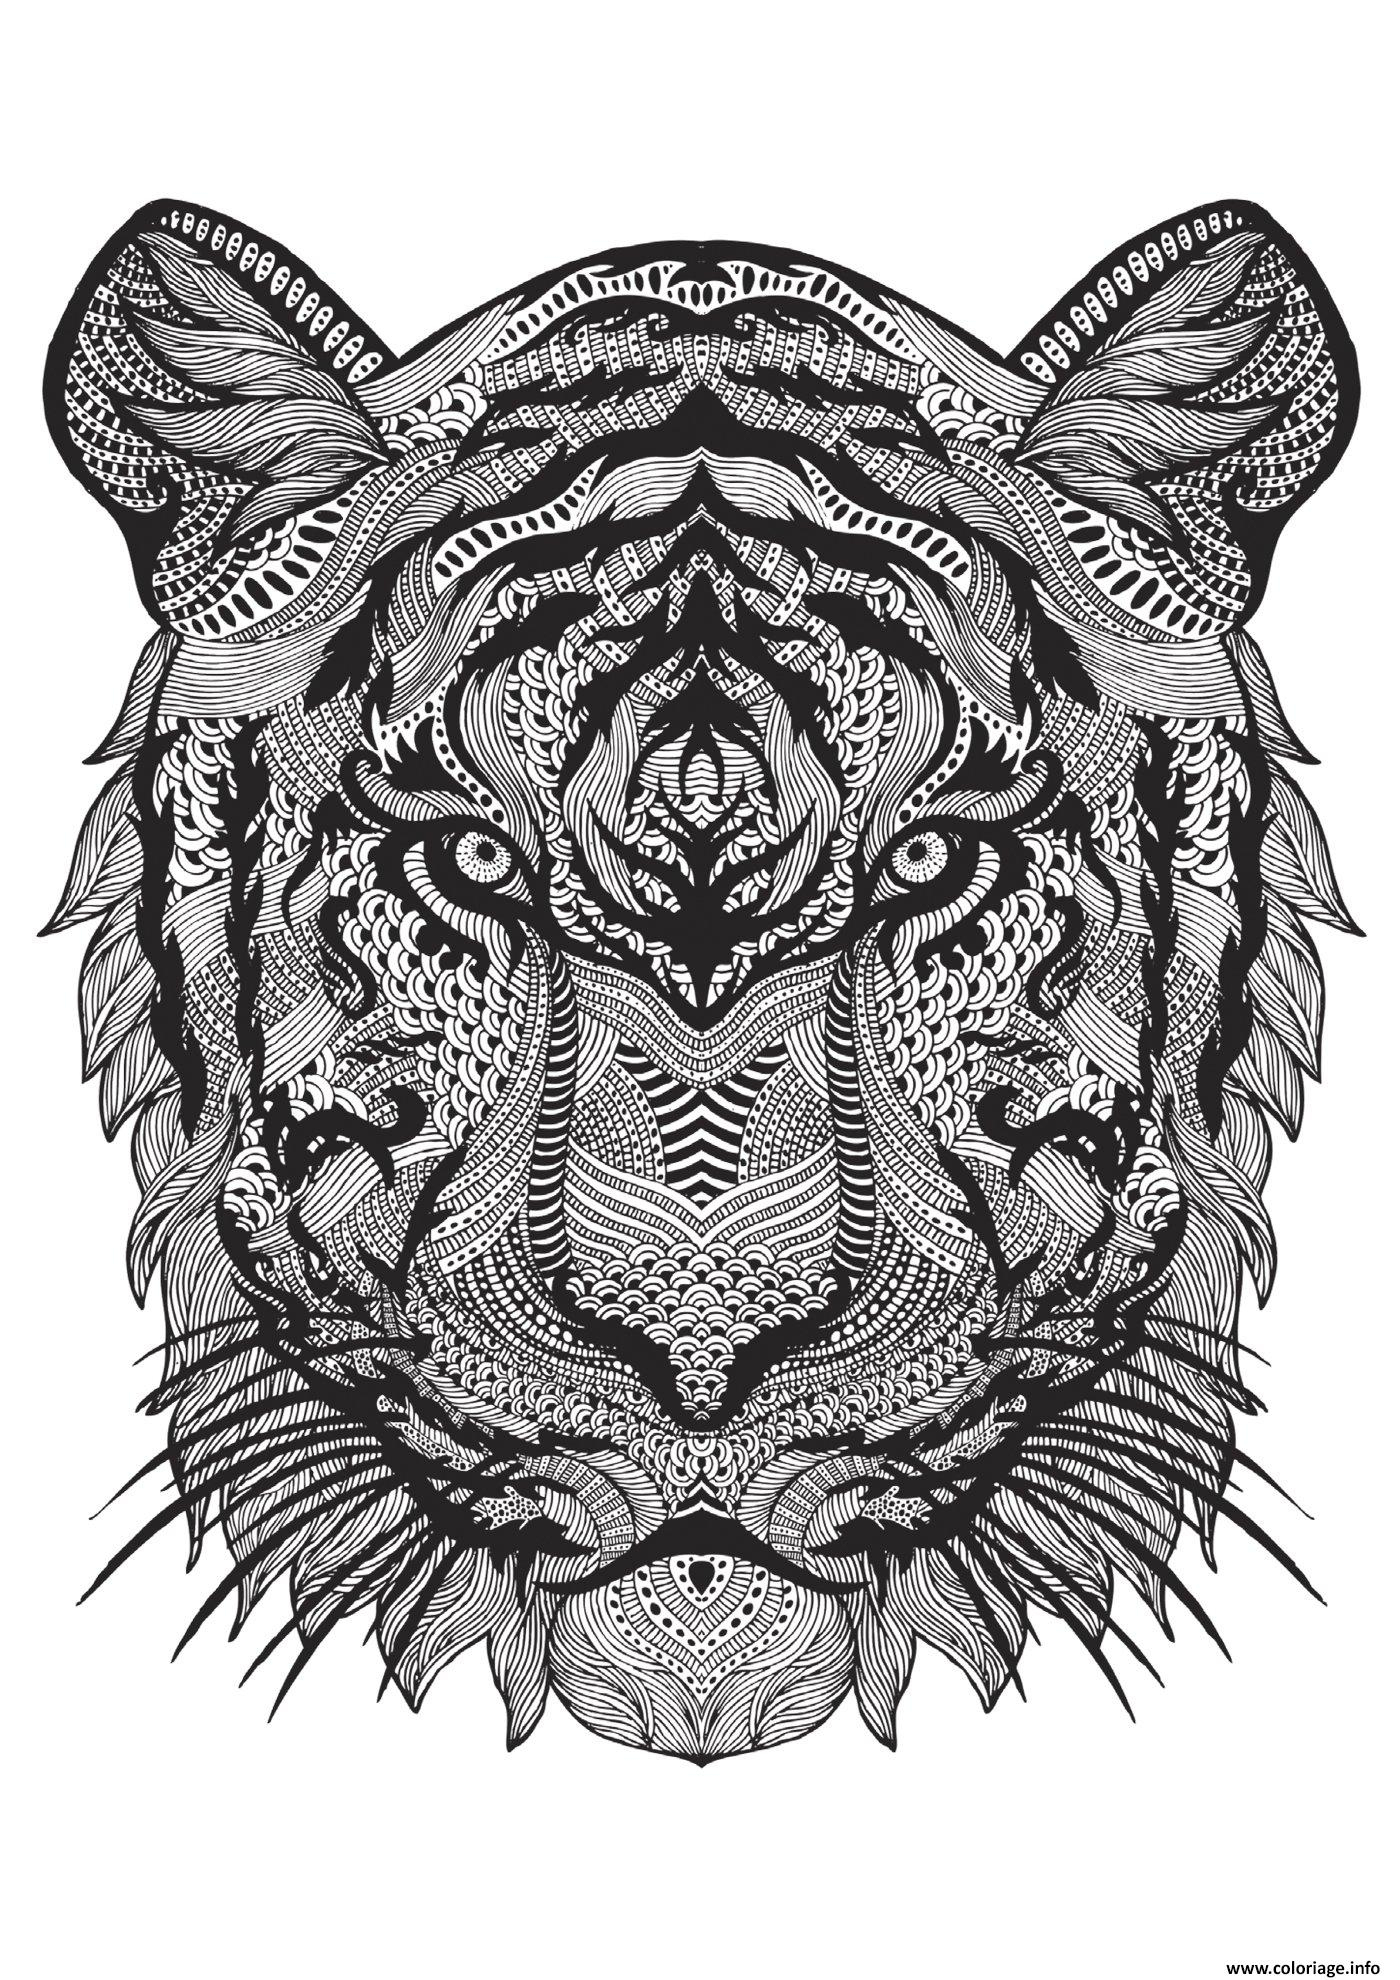 Coloriage Adulte Animal Tigre Difficile Antistress Dessin à Coloriage De Mandala Difficile A Imprimer